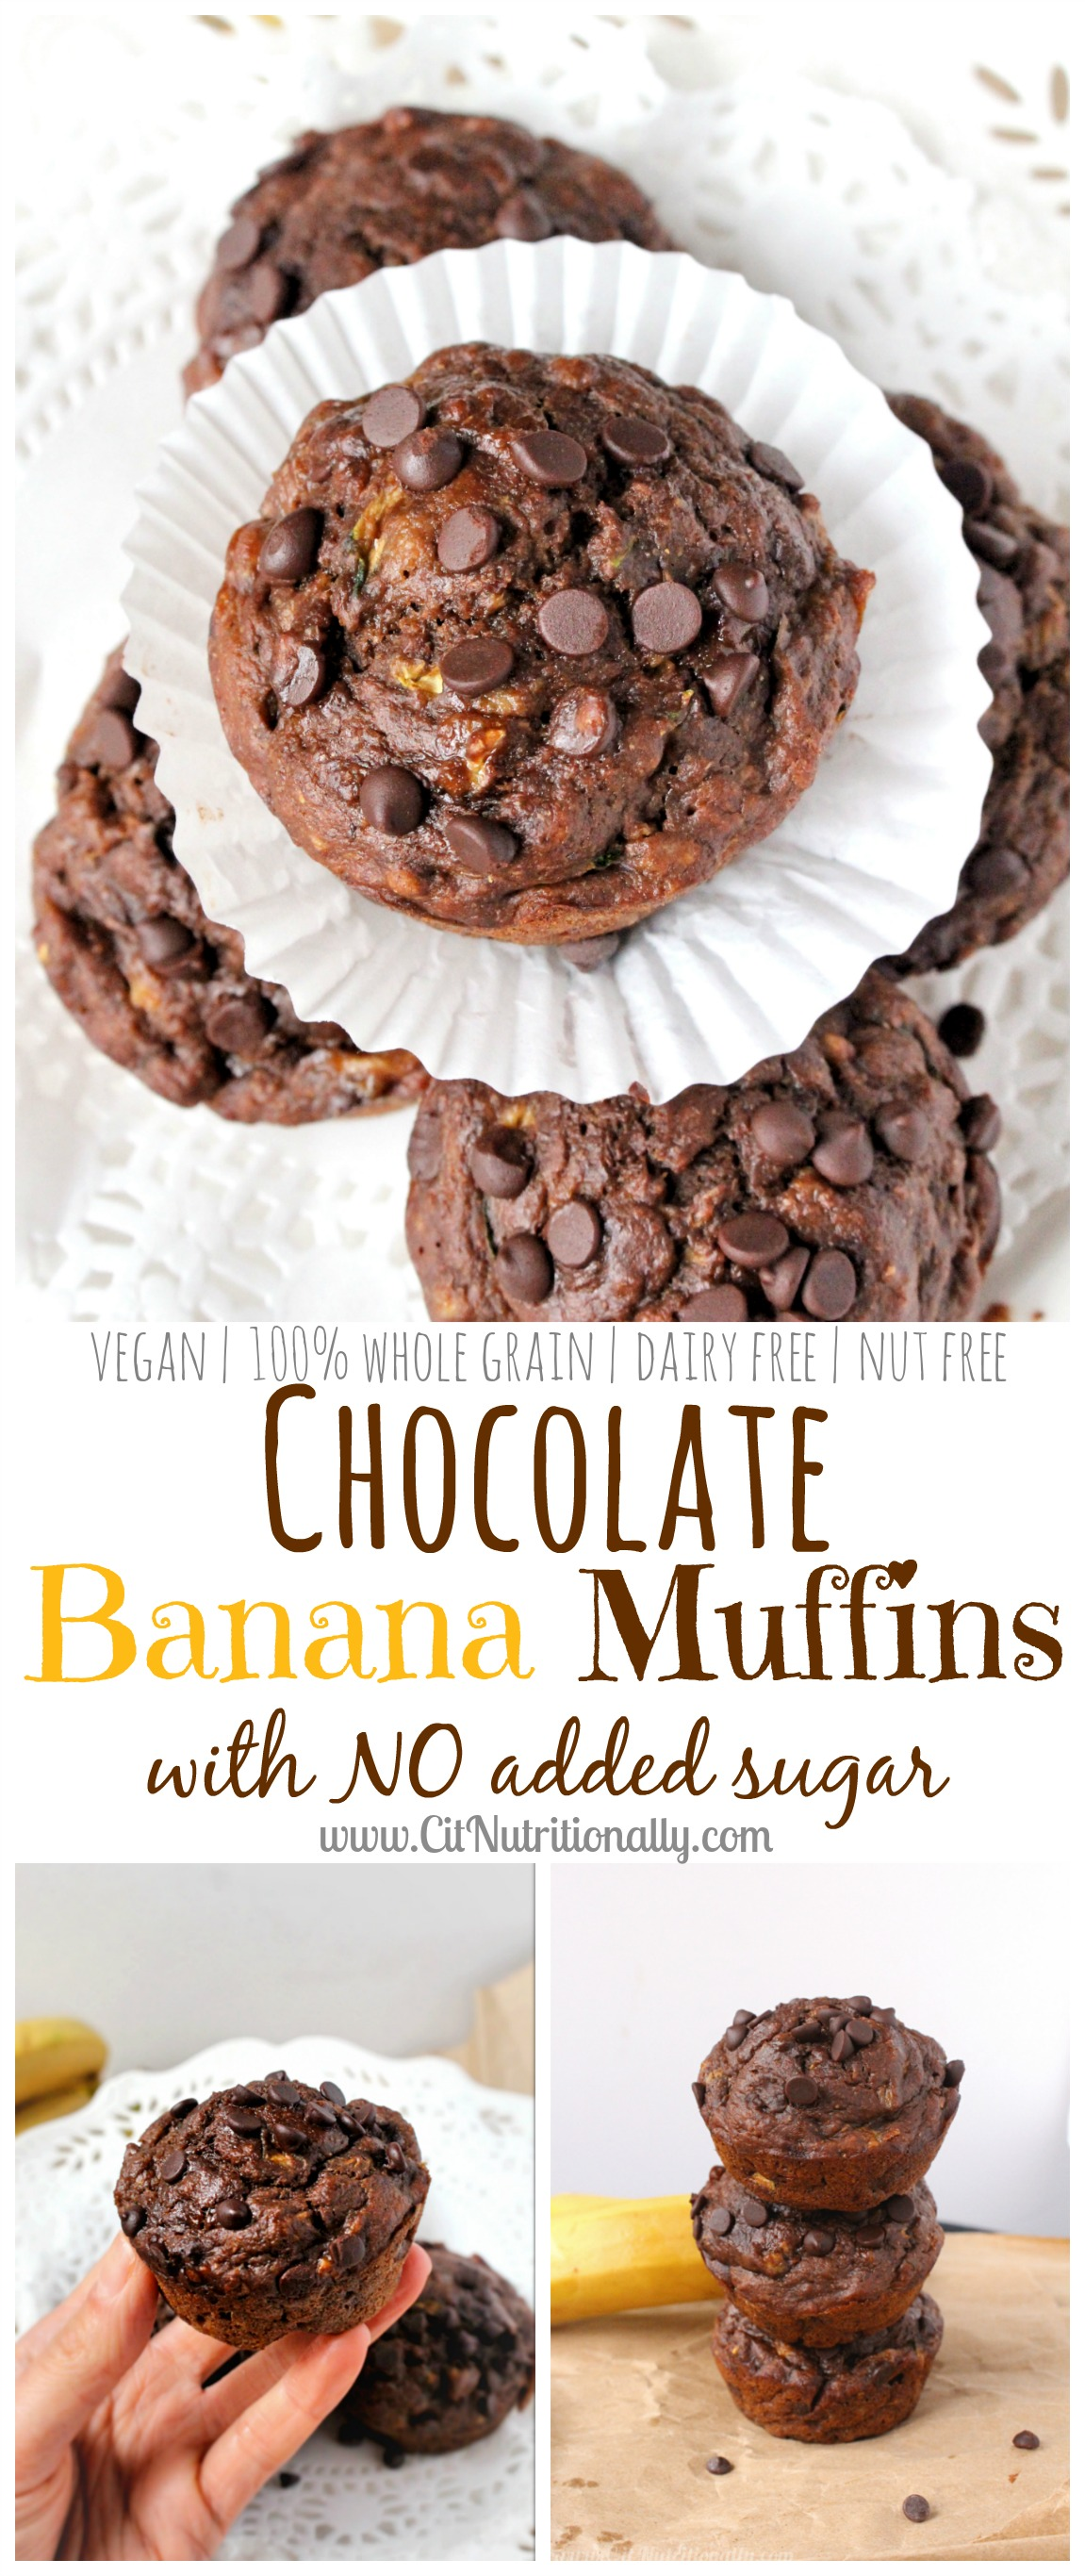 Vegan Chocolate Banana Muffins with No Added Sugar | C it Nutritionally #meatlessmonday #plantbased